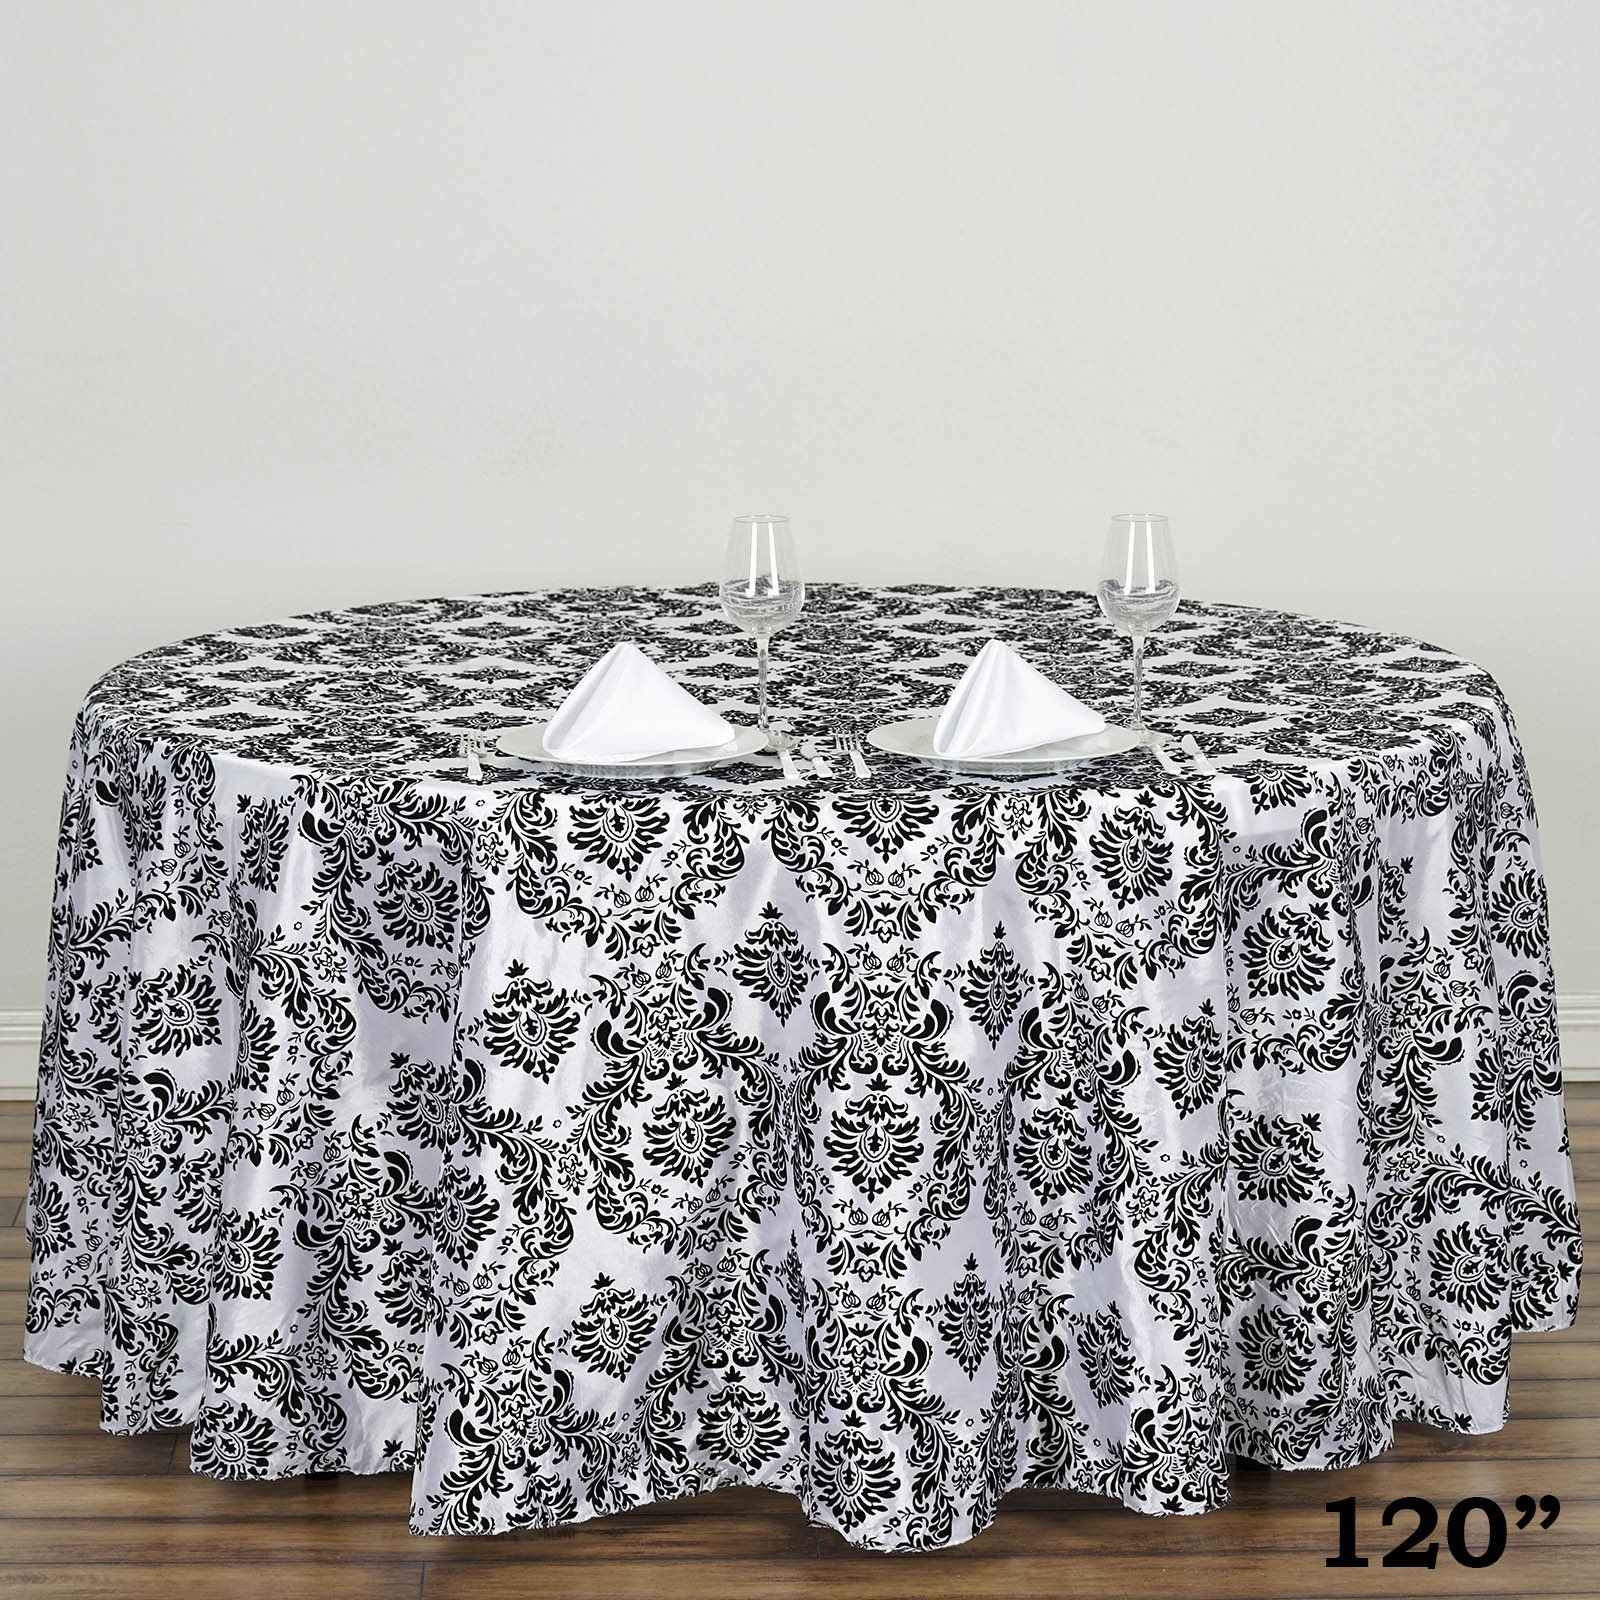 round flocking damask tablecloths tablecloth damasks accent table covers asian style floor lamps nightstand legs mersman inch small living room triangle ikea home deco side cloth